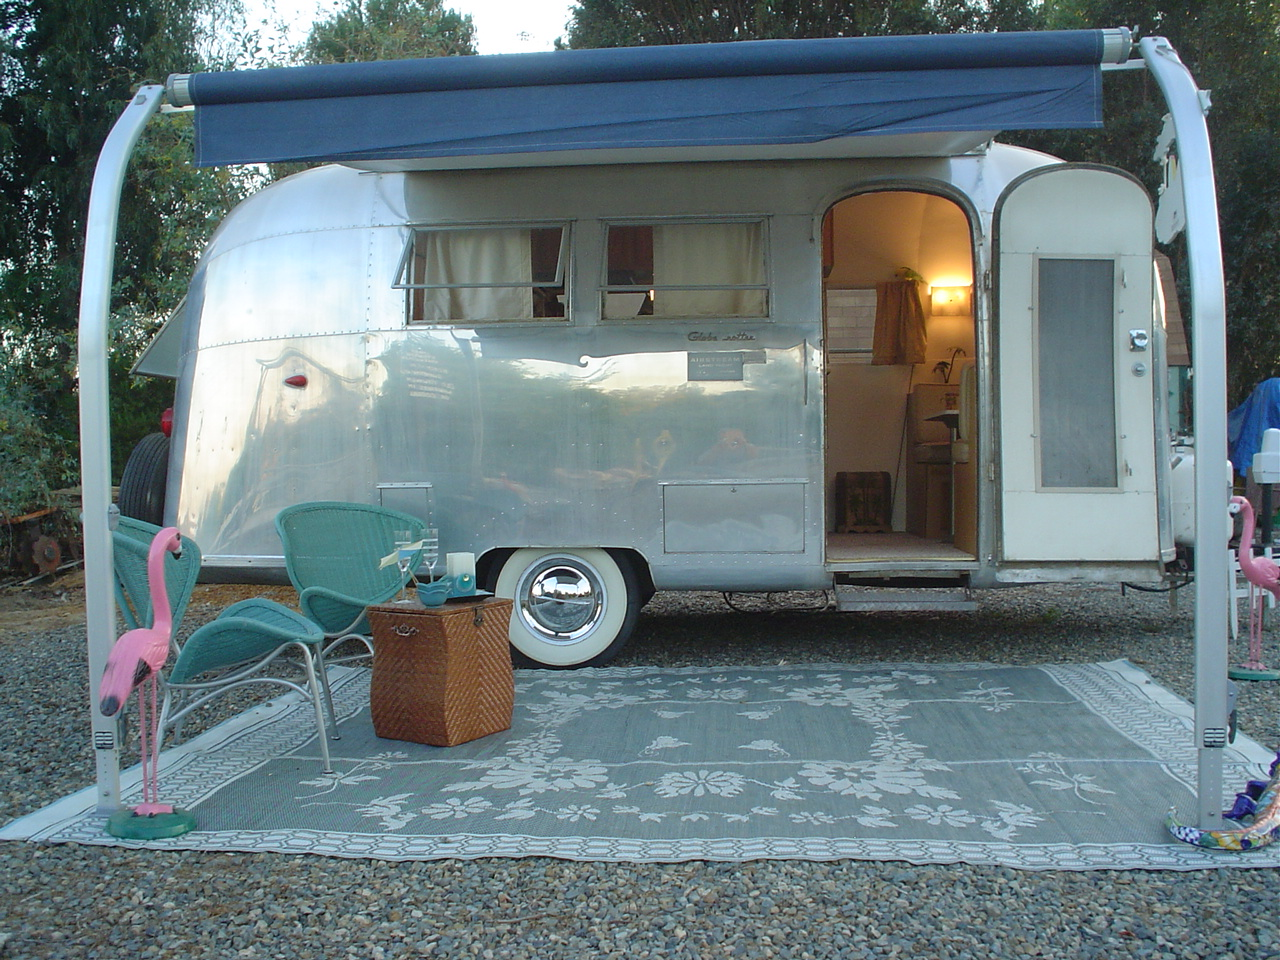 Perfect If Youre Shopping For A Pullbehind, There Are Plenty Of Options Birch Campers, A Threeyearold Teardrop Manufacturer Out Of Philadelphia Has Its Eyes On A New Niche Complete Build Kits For Lightweight Teardrops That Cost Around $2,000